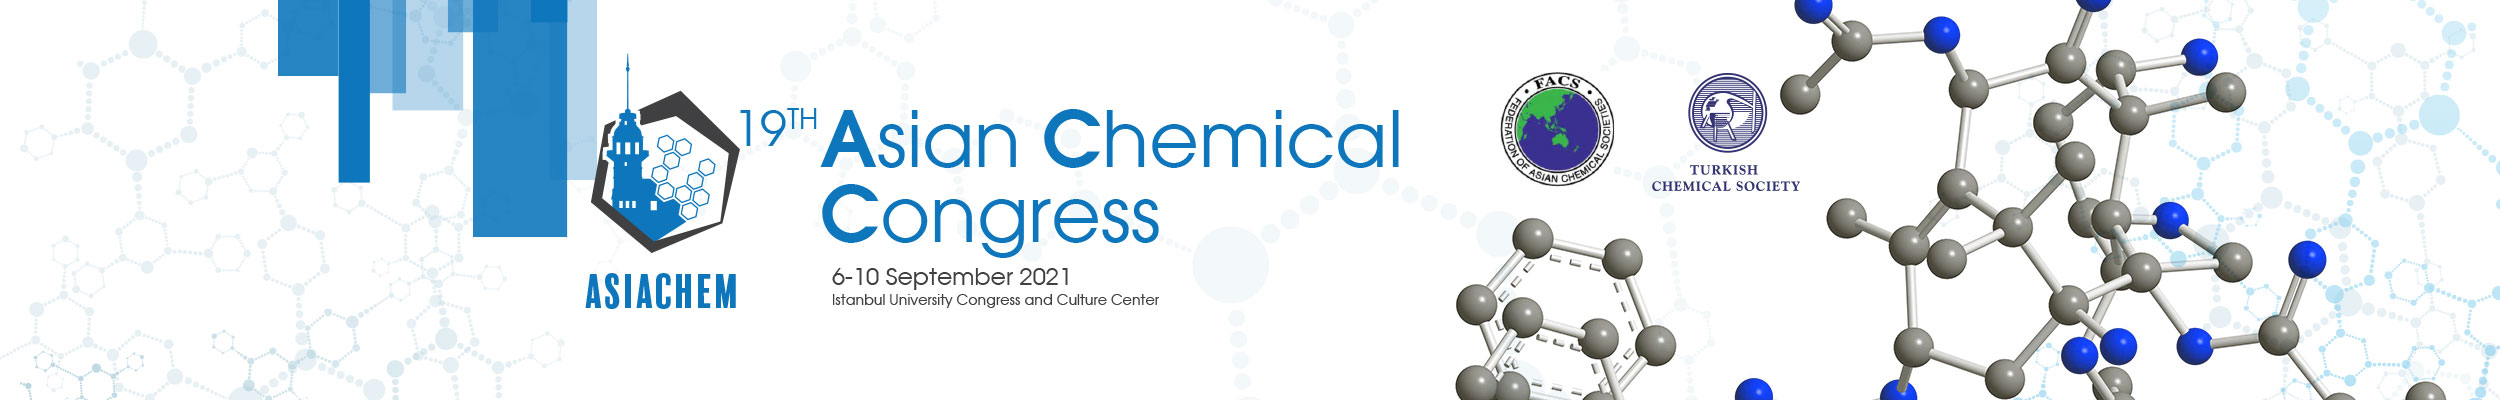 Asiachem – 19th Asian Chemical Congress